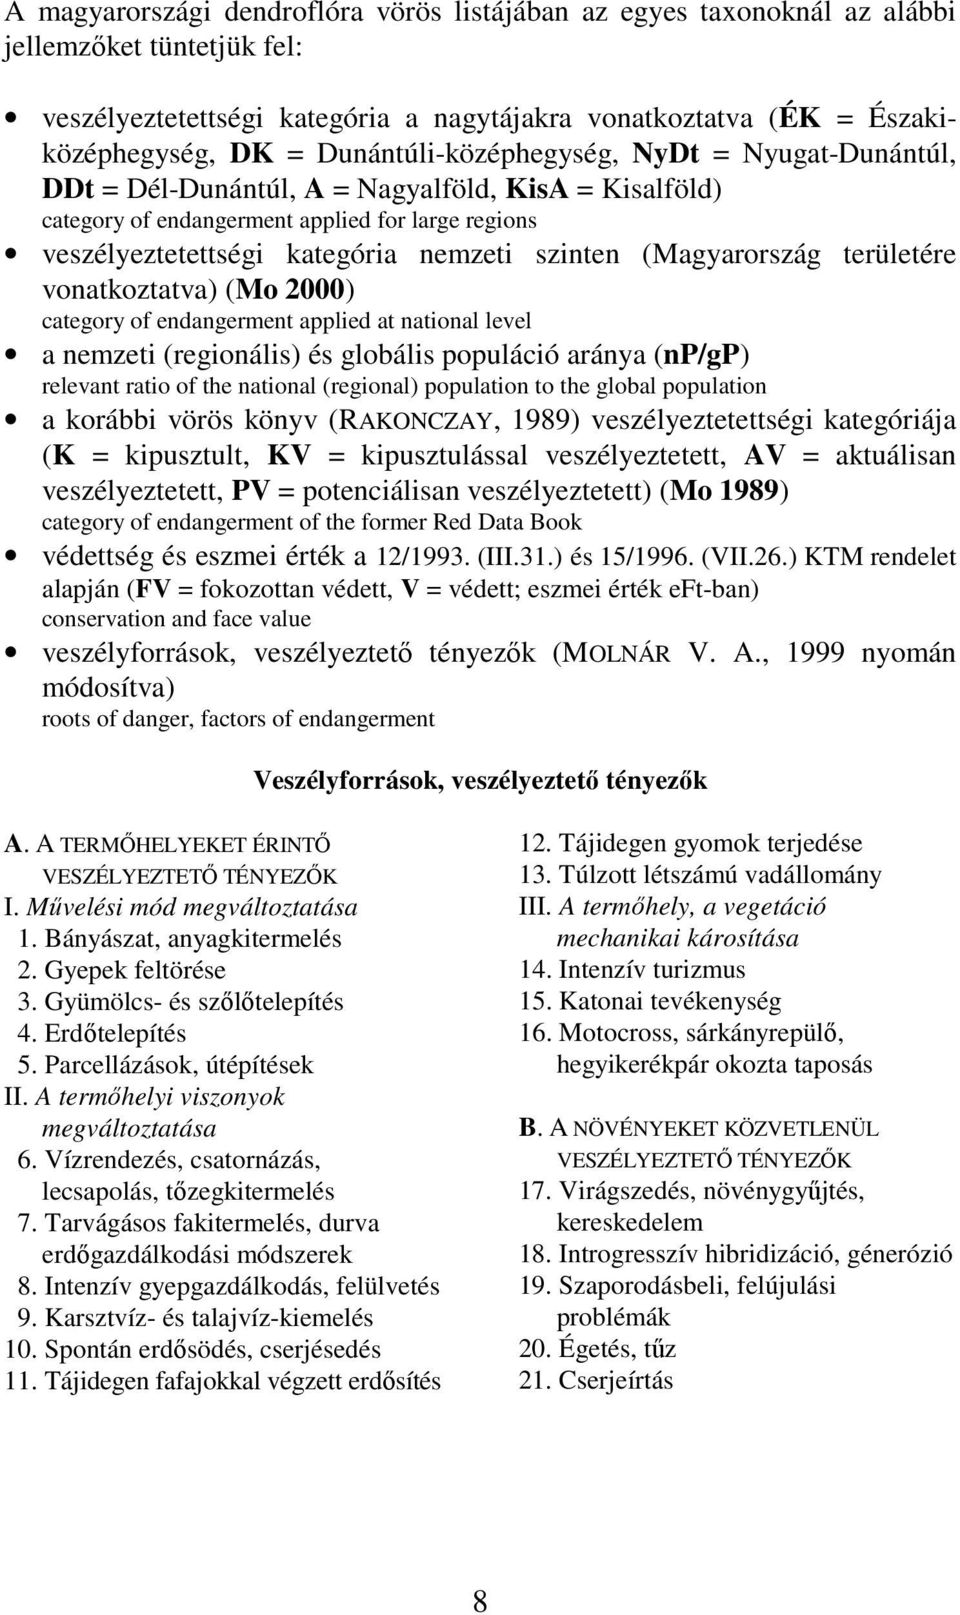 (Magyarország területére vonatkoztatva) (Mo 2000) category of endangerent applied at national level a nezeti (regionális) és globális populáció aránya (np/gp) relevant ratio of the national